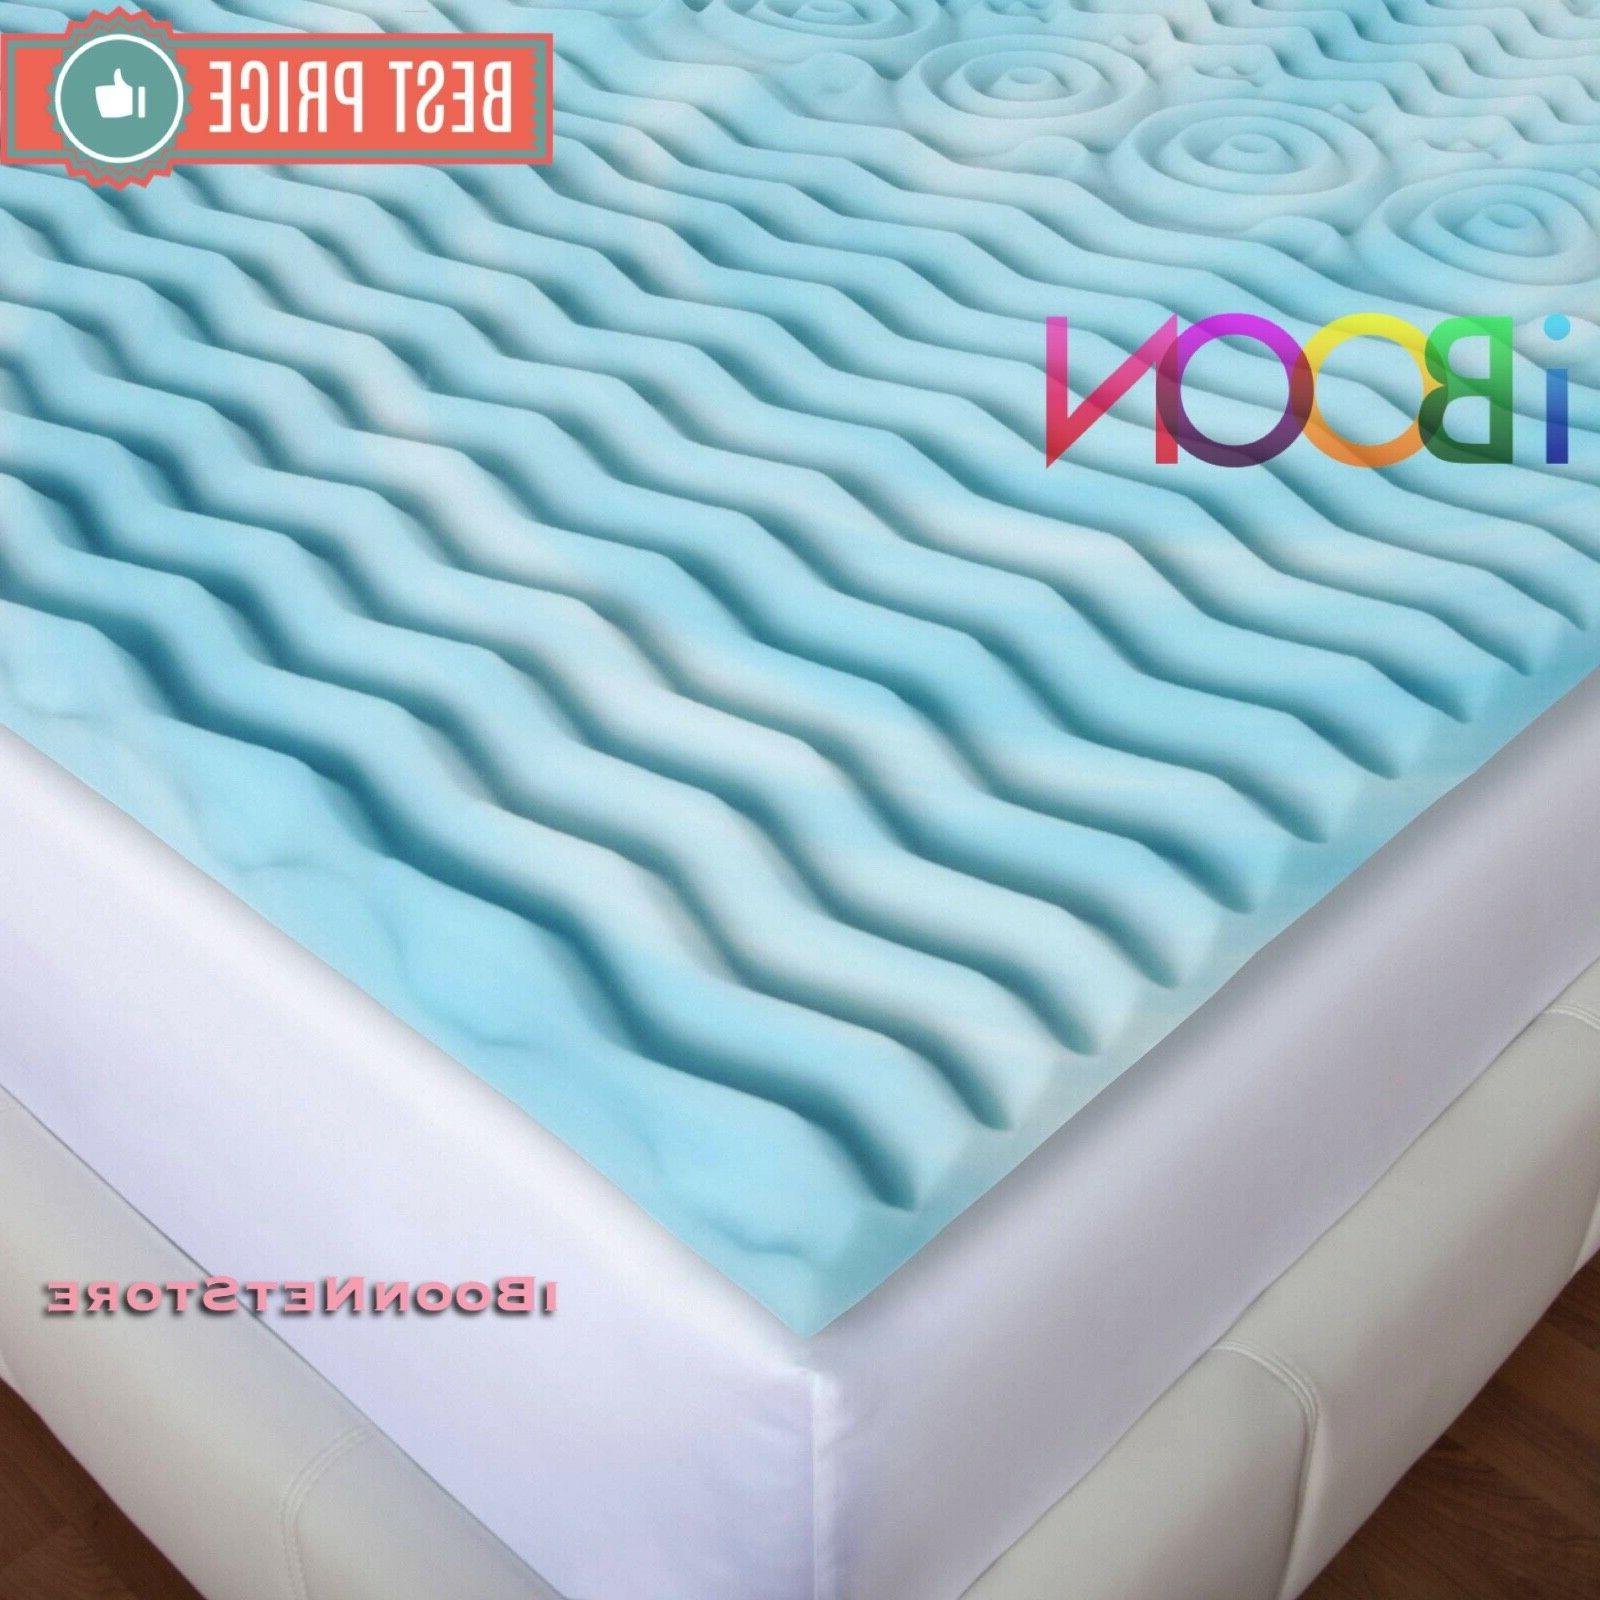 3 INCH Memory Mattress Topper Size Gel Cover bed